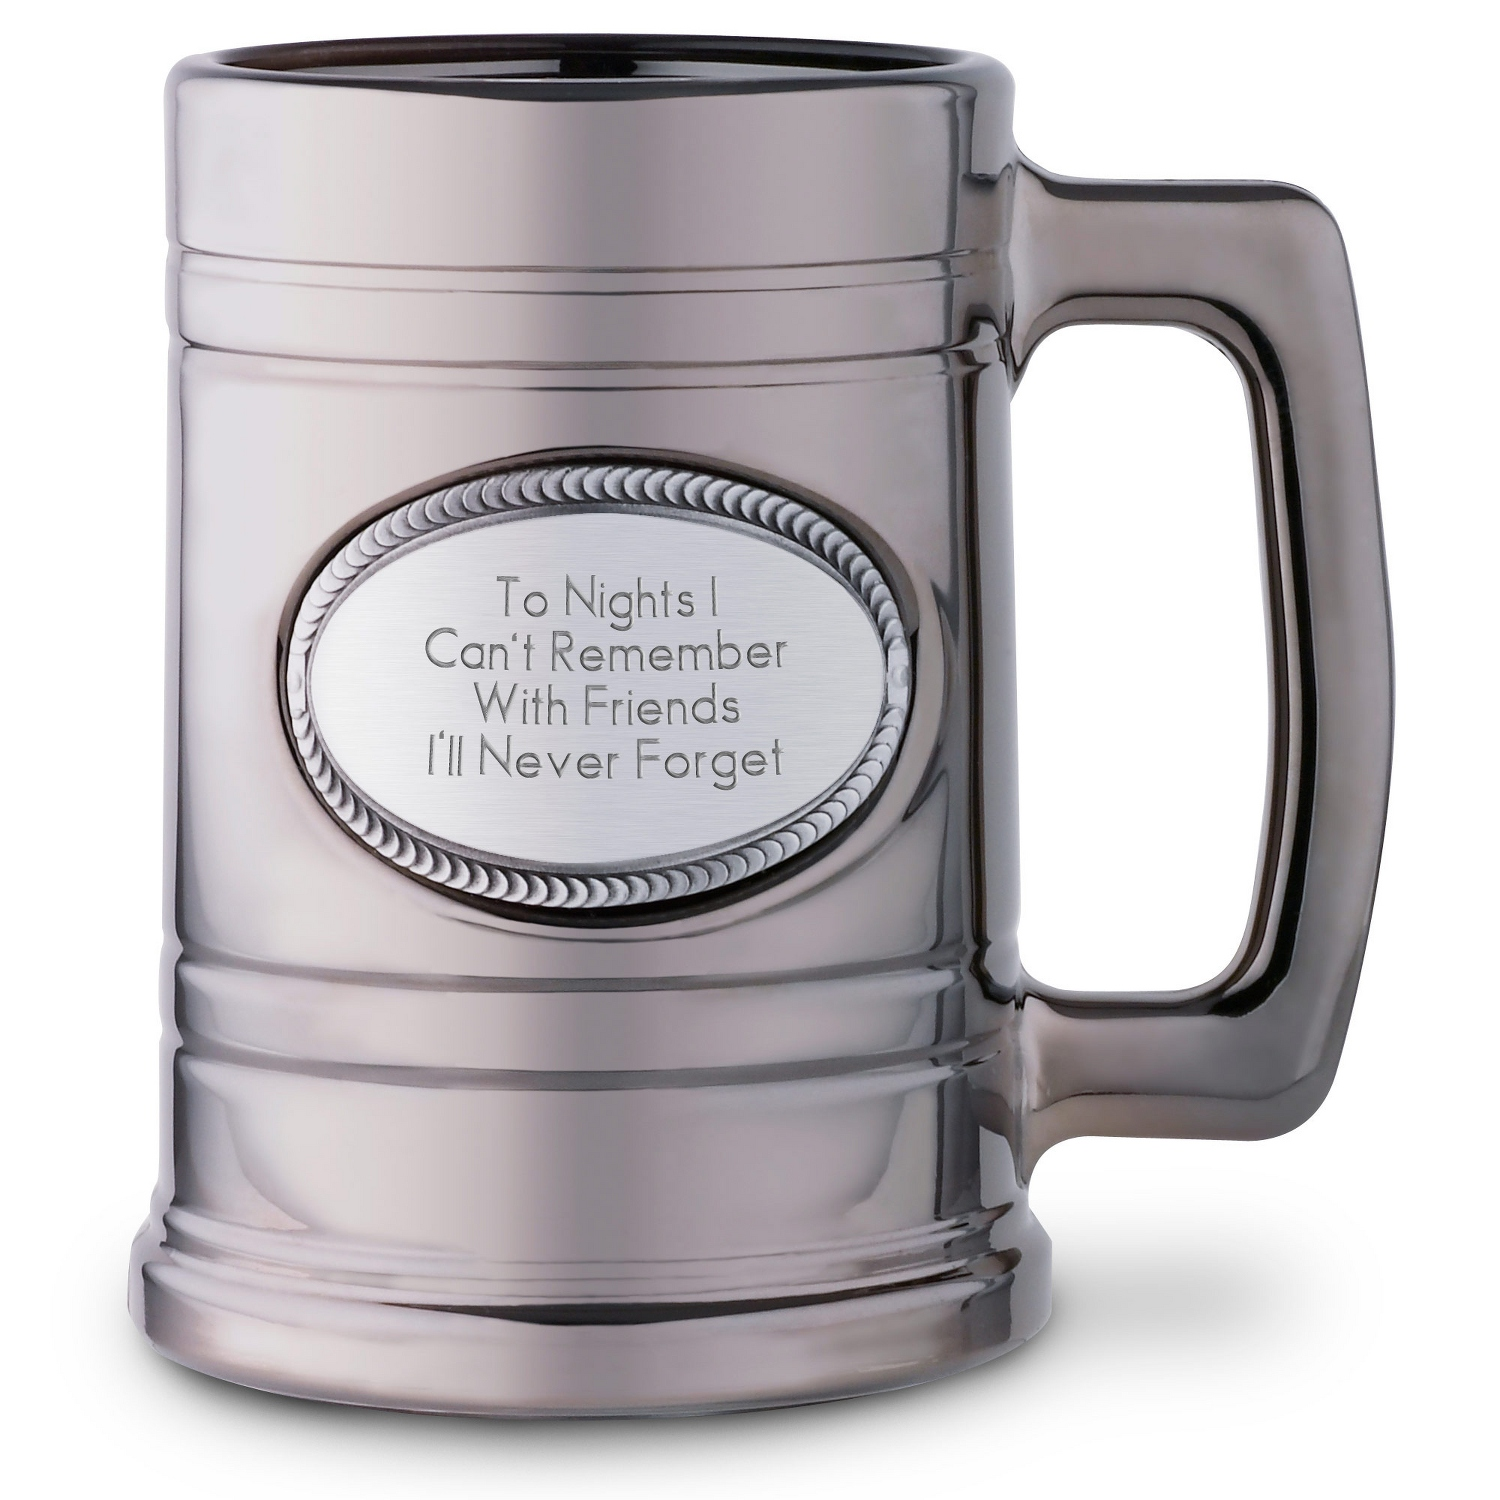 Personalized coffee mugs raleigh nc - Metallic Beer Mug